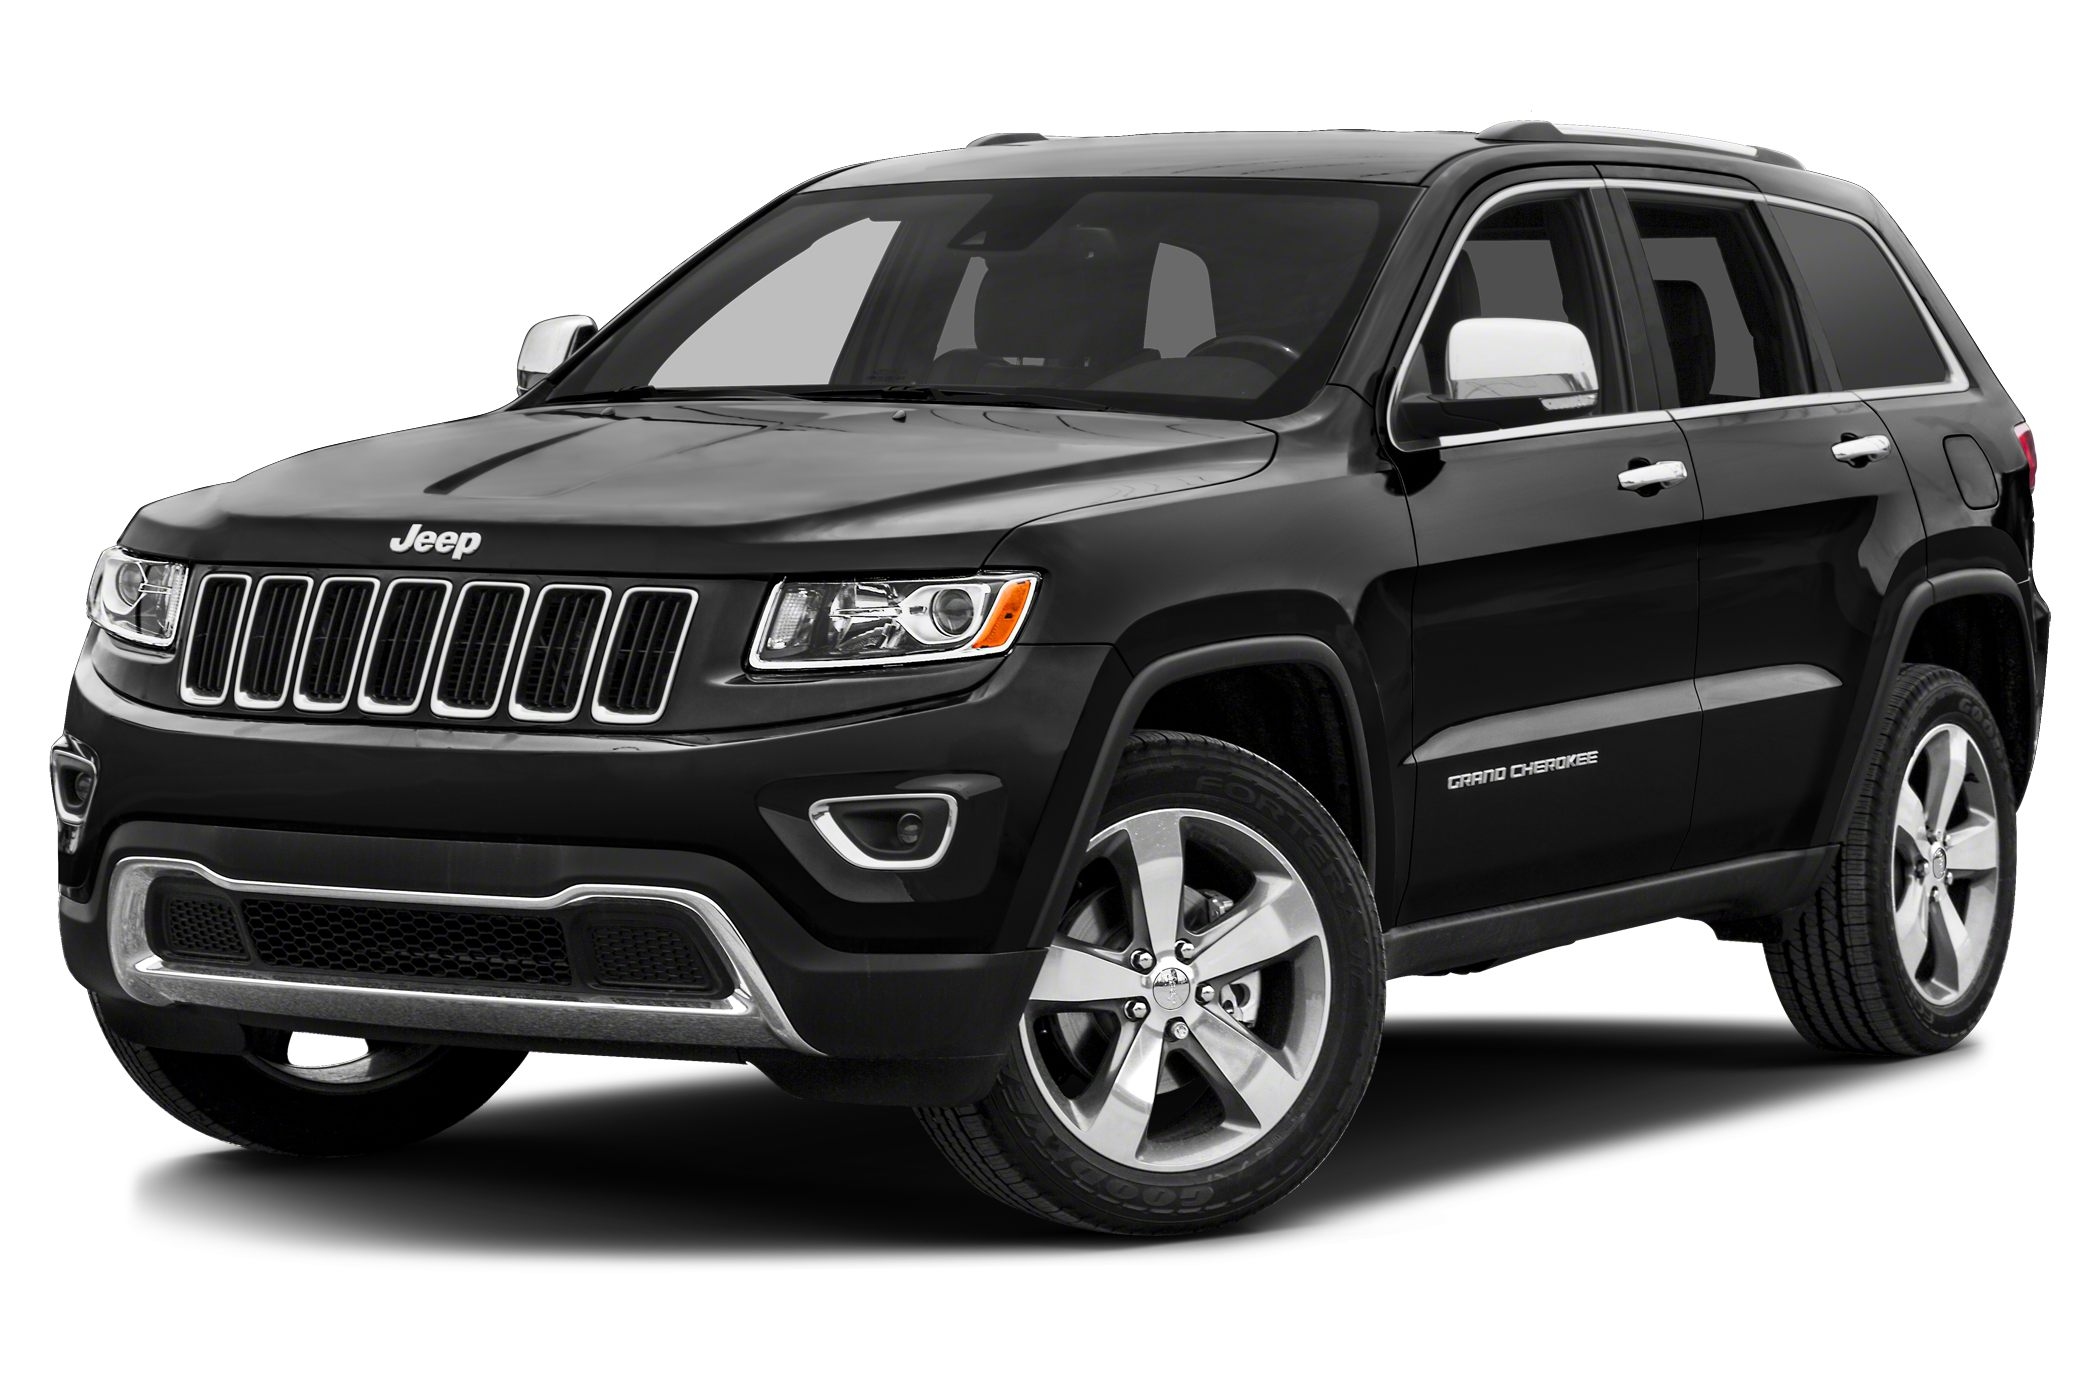 2015 Jeep Grand Cherokee Laredo SUV for sale in Tacoma for $41,415 with 10 miles